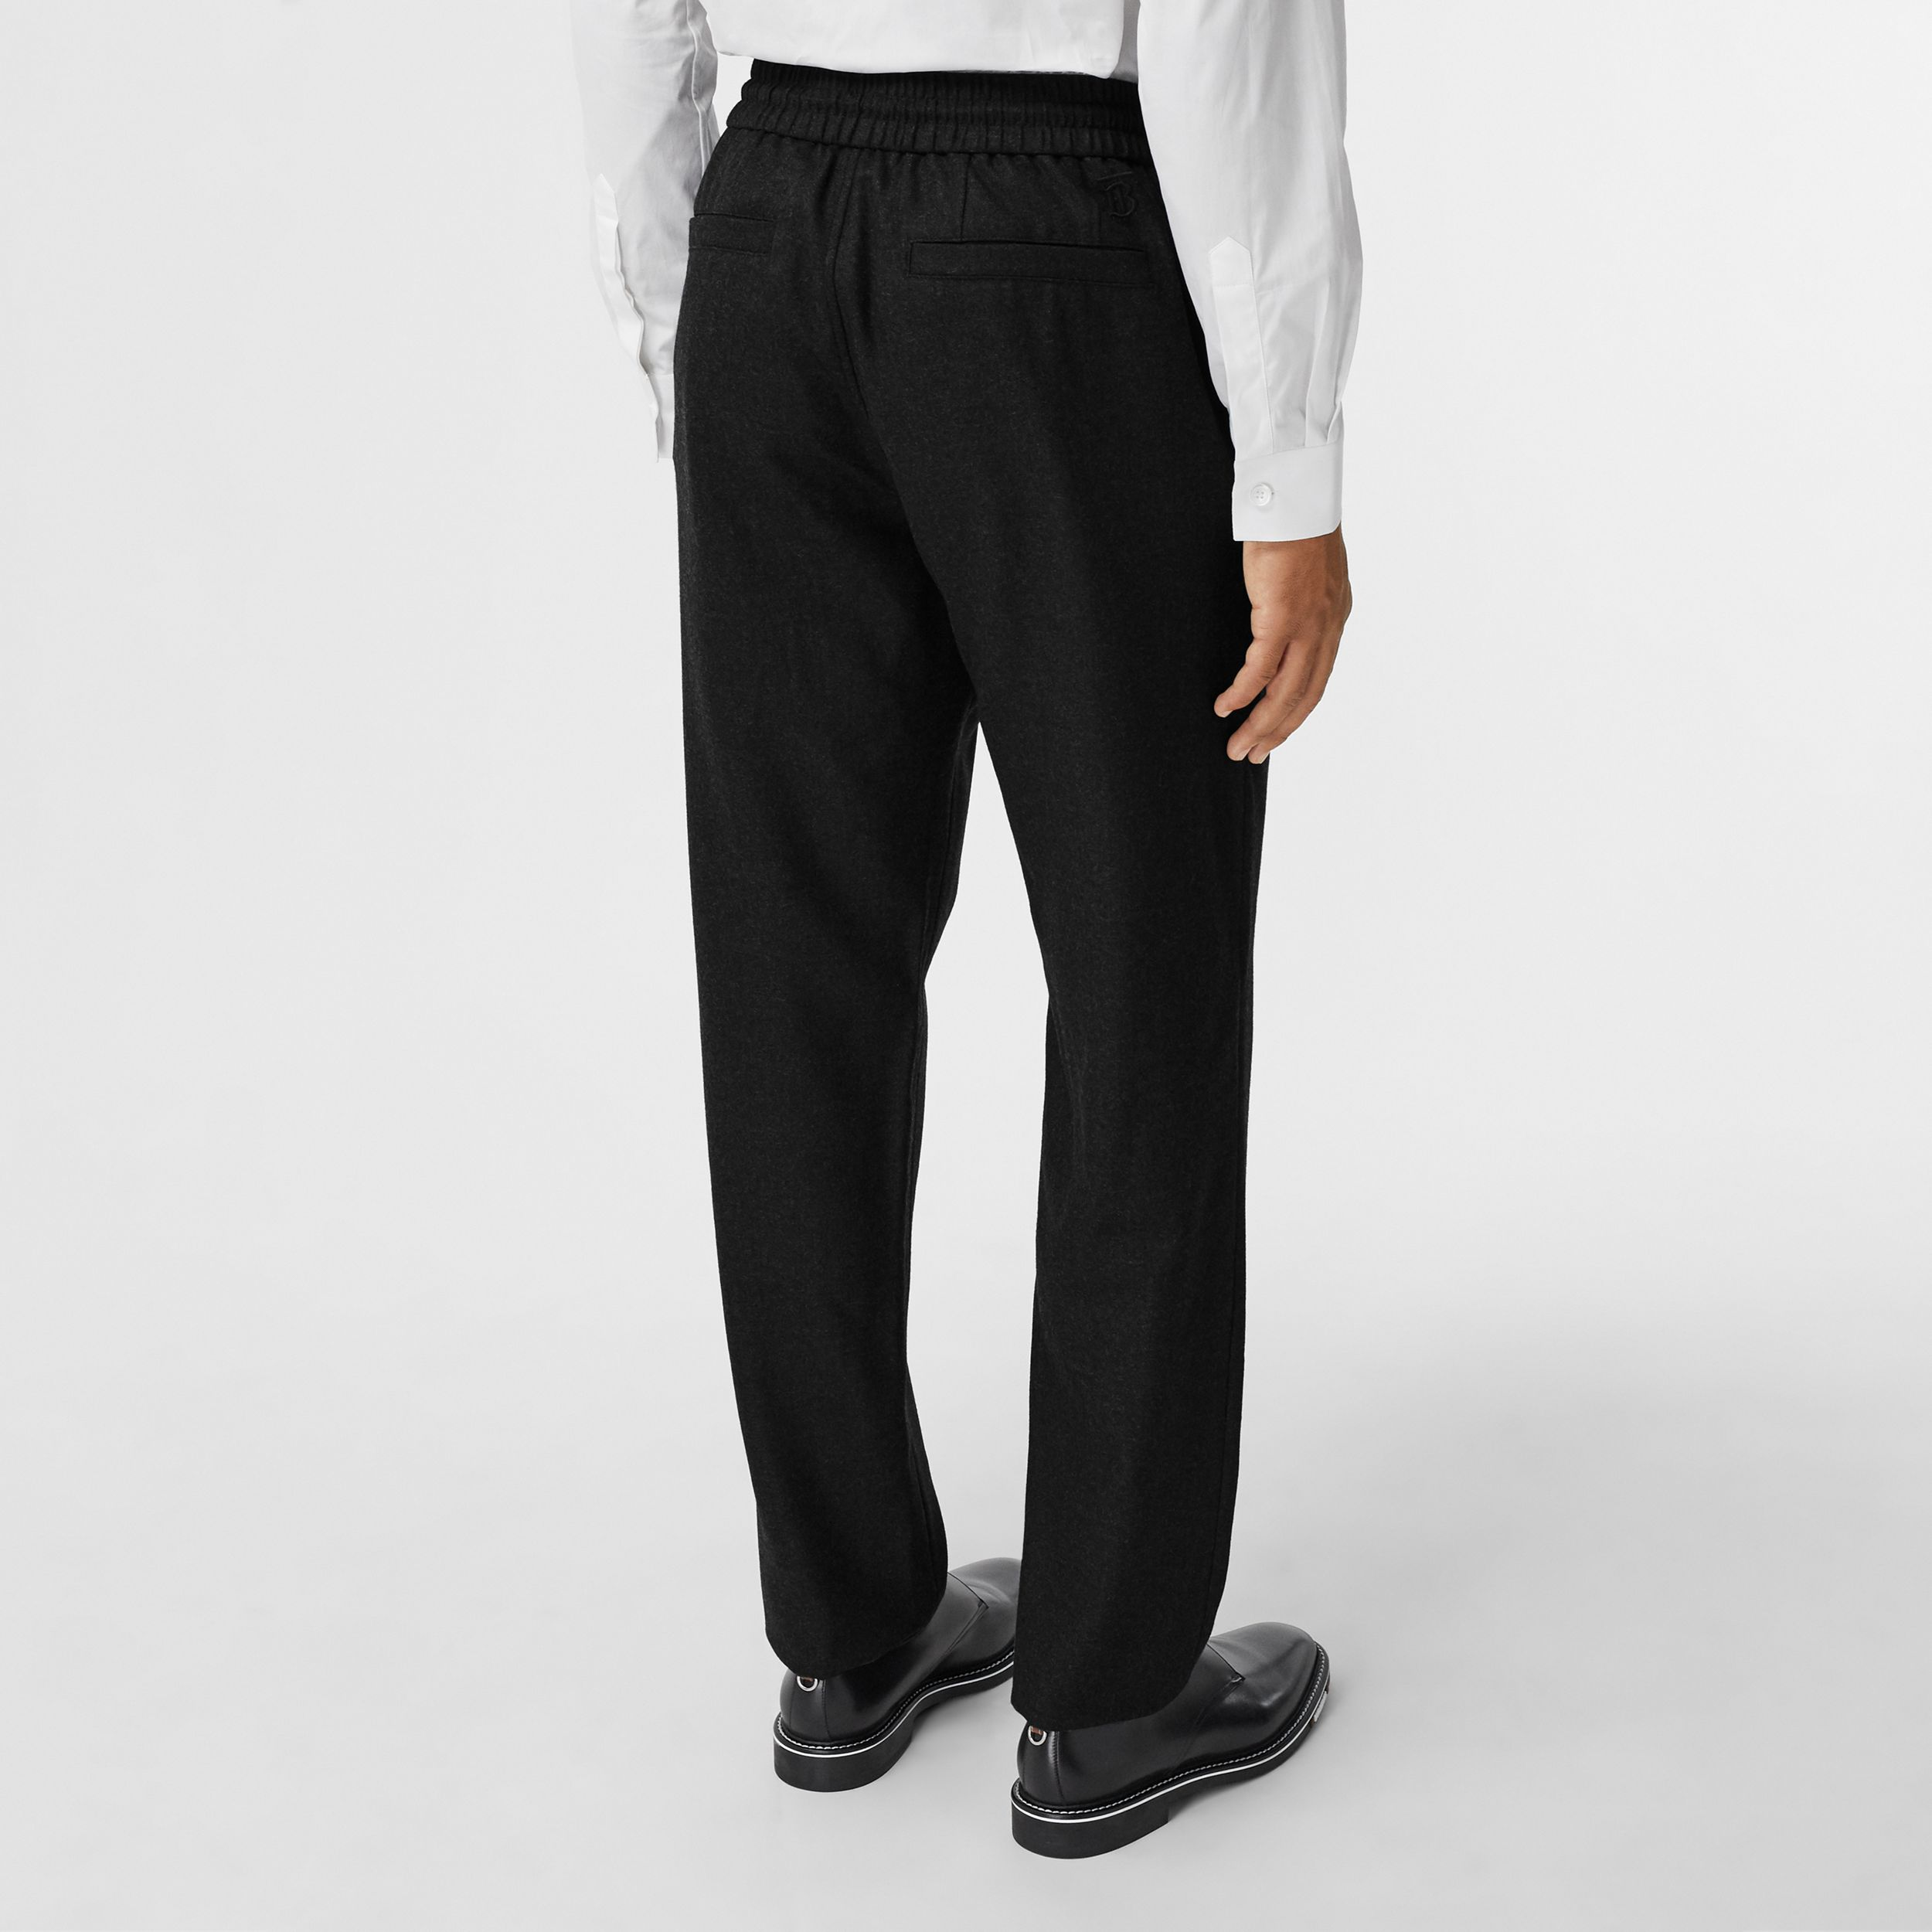 Monogram Motif Wool Jogging Pants in Black - Men | Burberry Hong Kong S.A.R. - 3